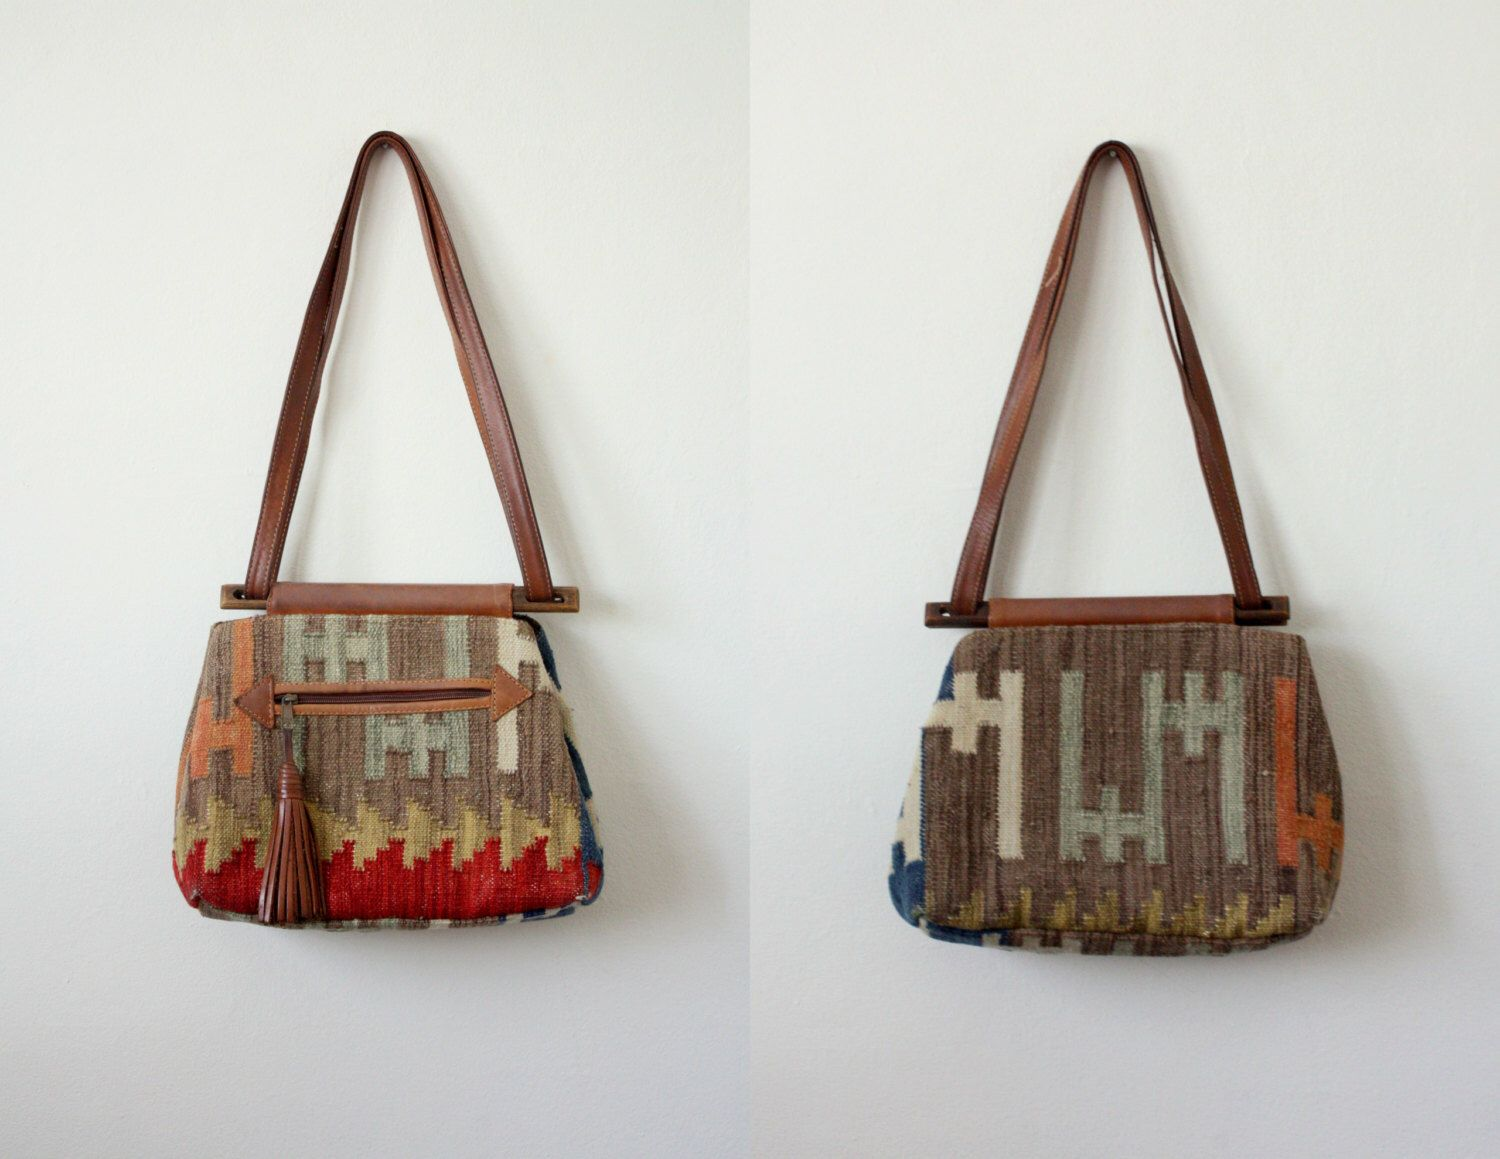 vintage tribal shoulder bag by 1919vintage on Etsy https://www.etsy.com/listing/182455514/vintage-tribal-shoulder-bag